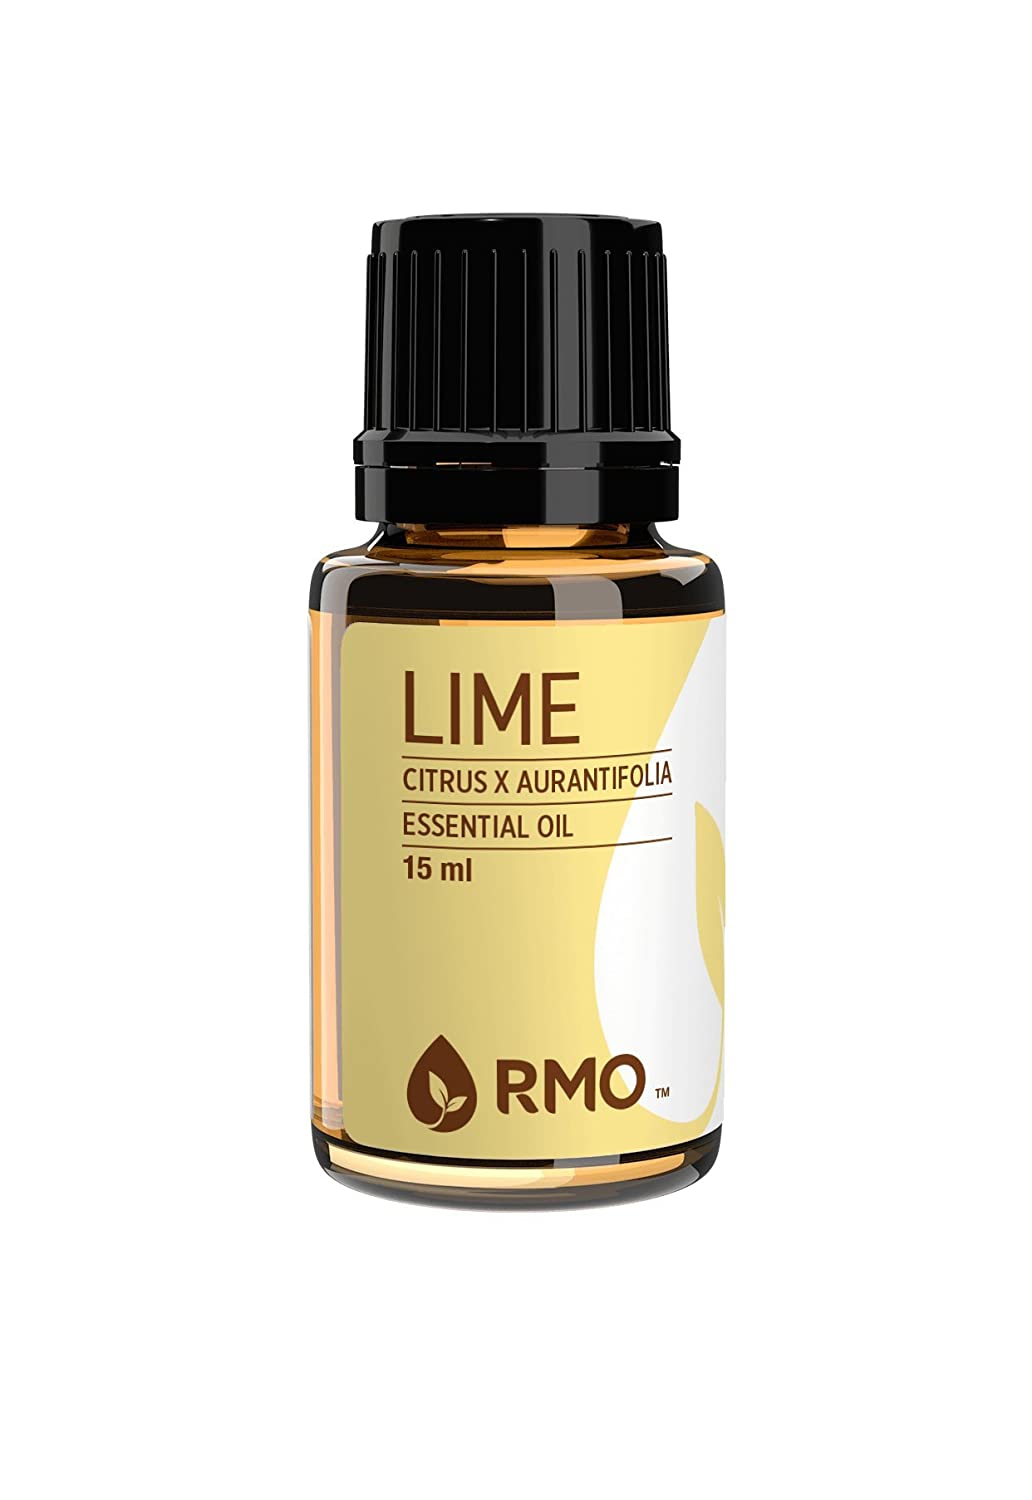 Lime essential oil benefits